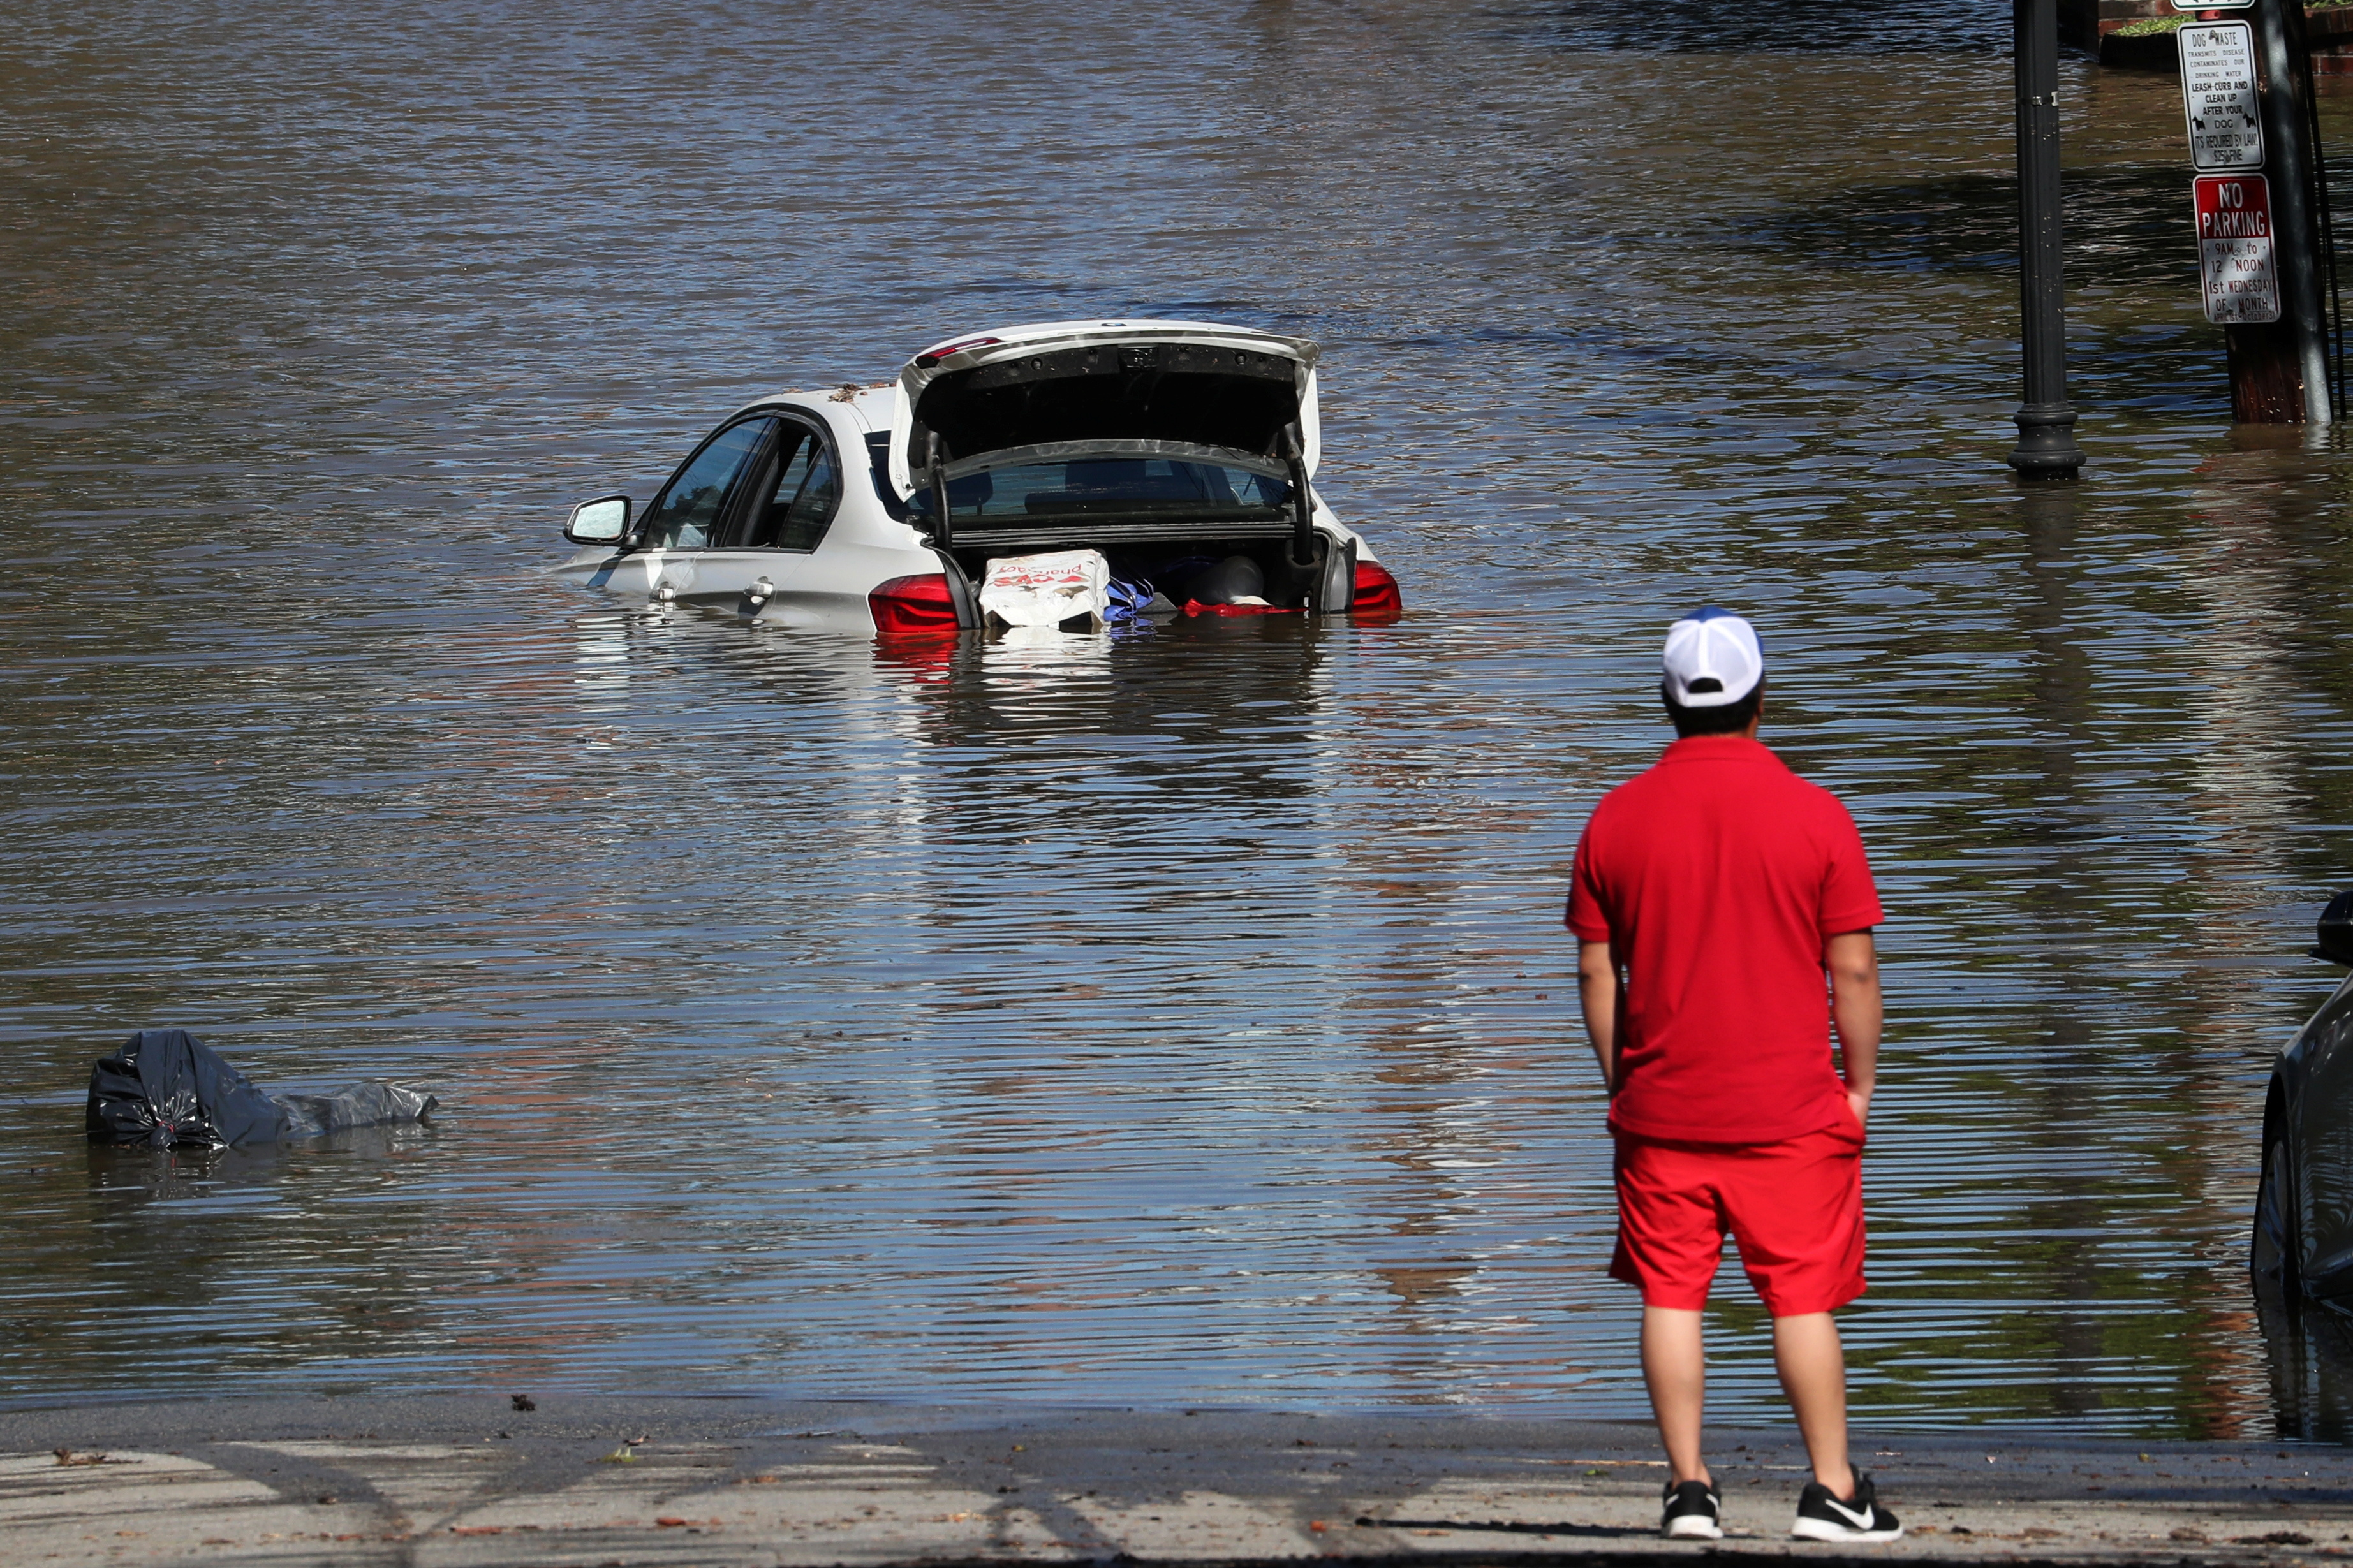 A man looks at a car in floodwaters after remnants of Ida brought drenching rain, flash floods and tornadoes to parts of the Northeast in Mamaroneck, New York, September 2, 2021. REUTERS/Mike Segar